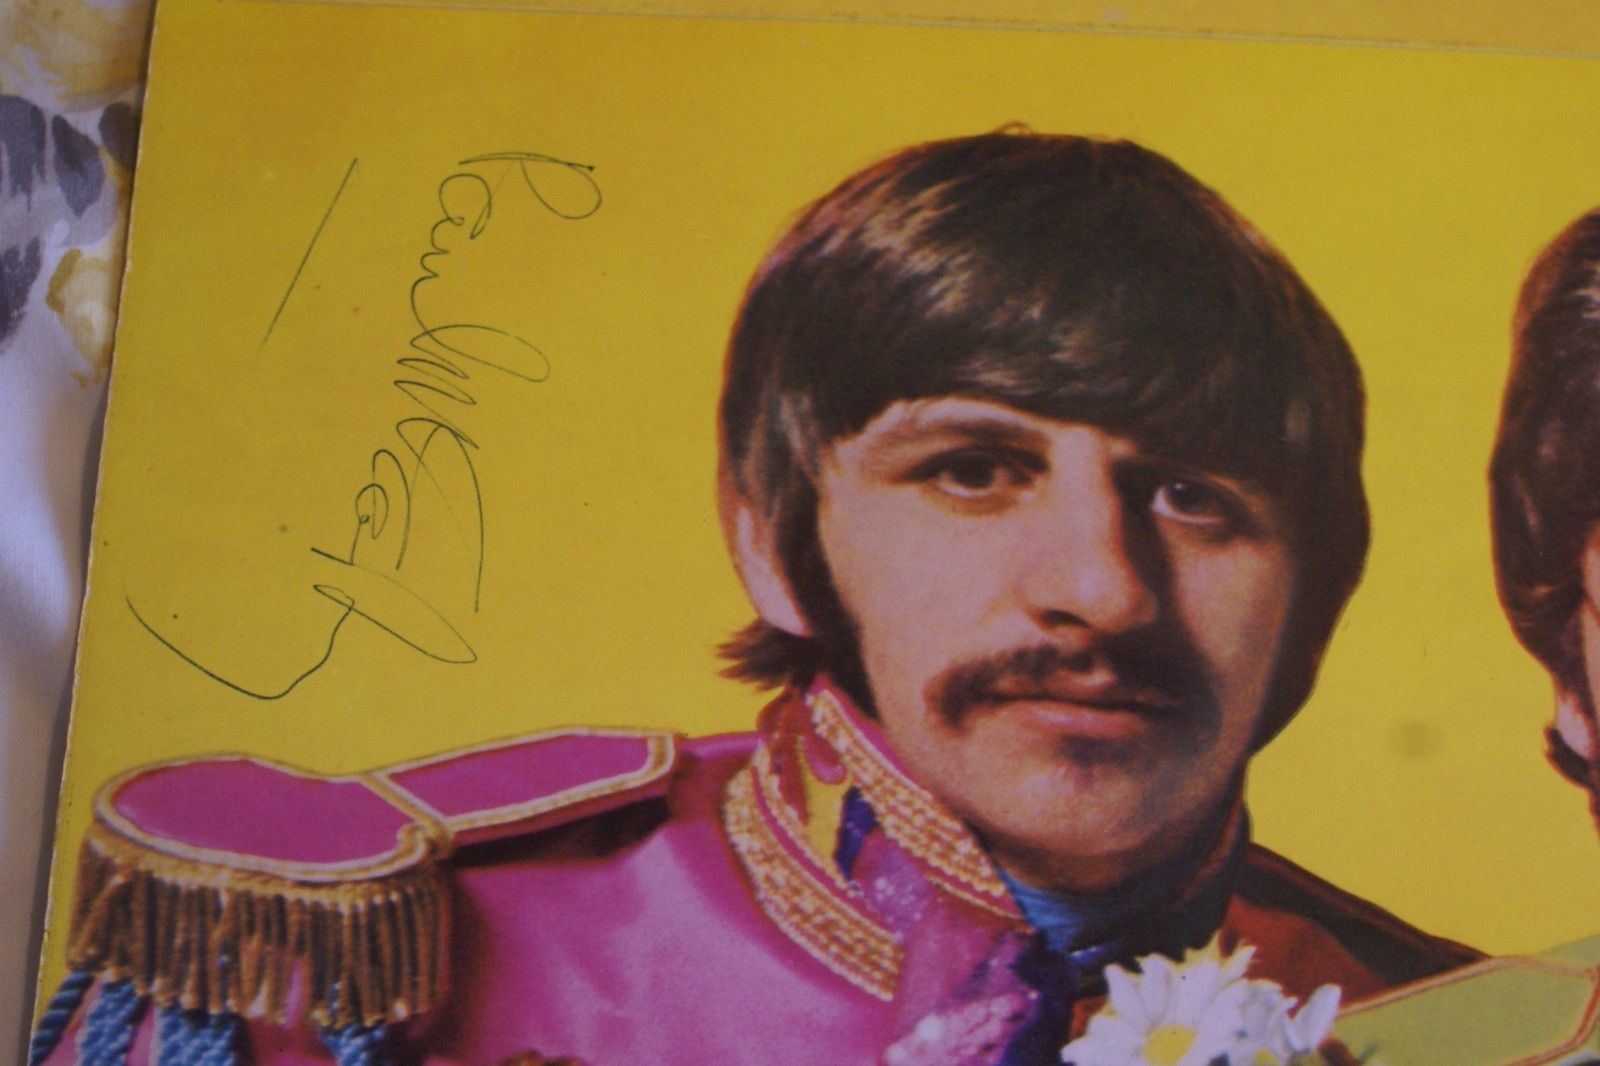 The Beatles/Paul McCartney 1968 signed Sgt Peppers-Caiazzo